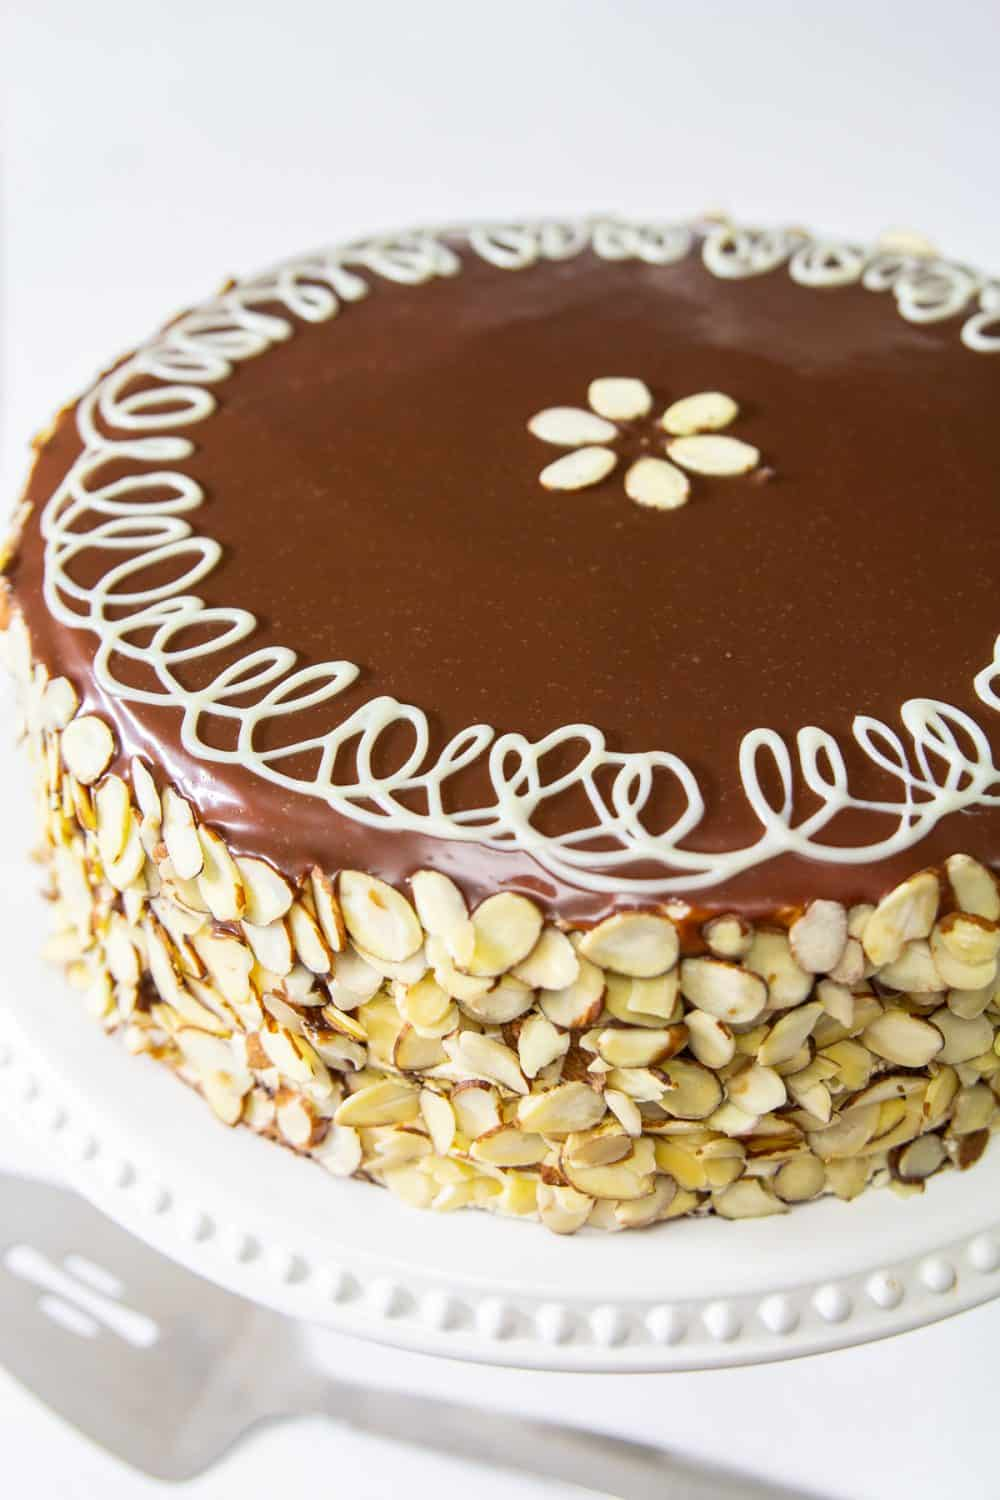 Poppy Seed Honey Cake covered in sliced almonds and chocolate ganache on a white plate and white background.